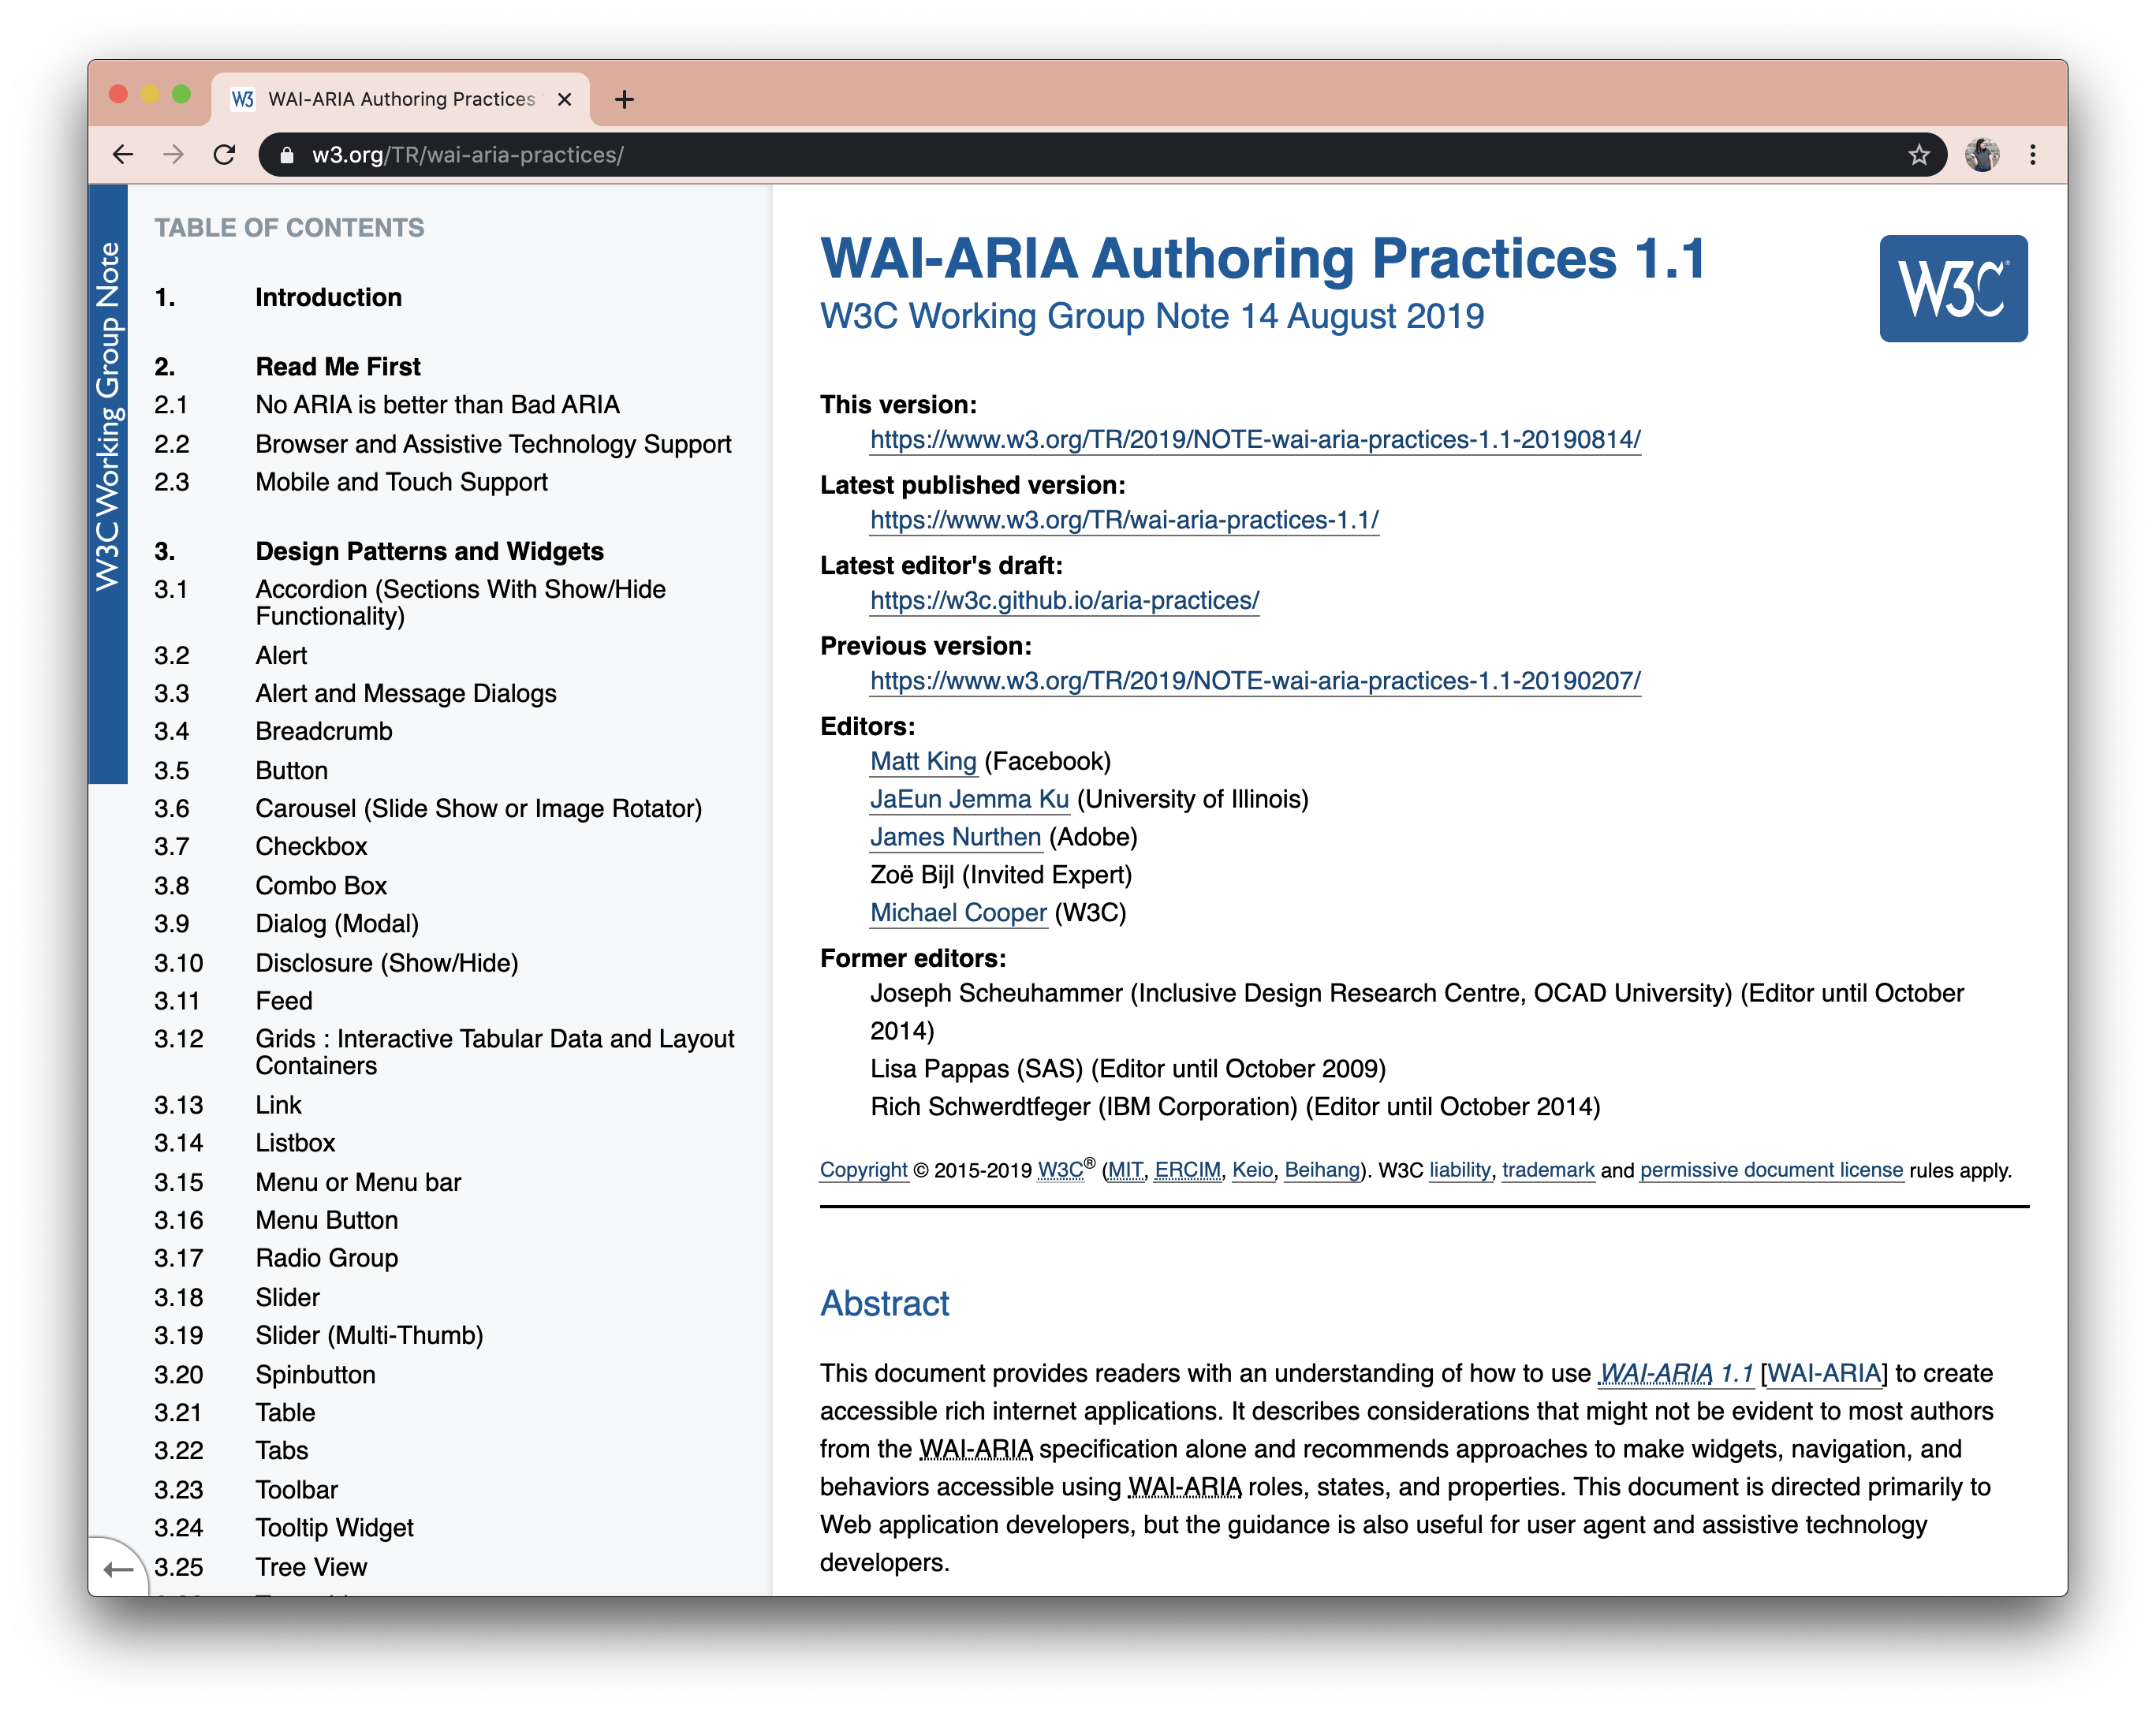 Screenshot of the WAI-ARIA Authoring Practices webpage.